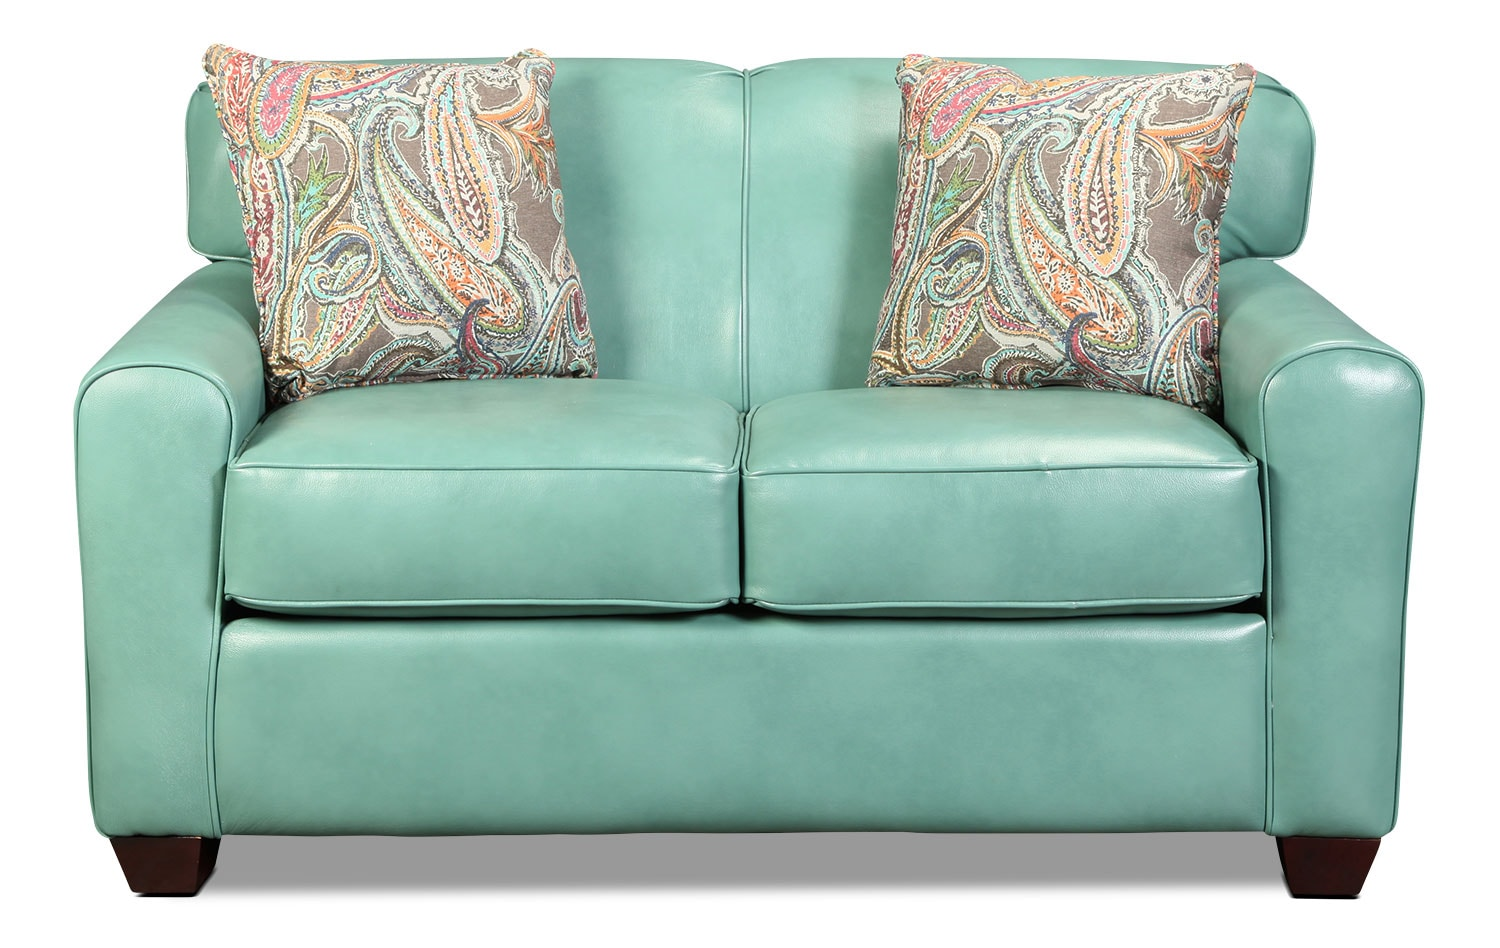 Linden Twin Sleeper Sofa - Aqua